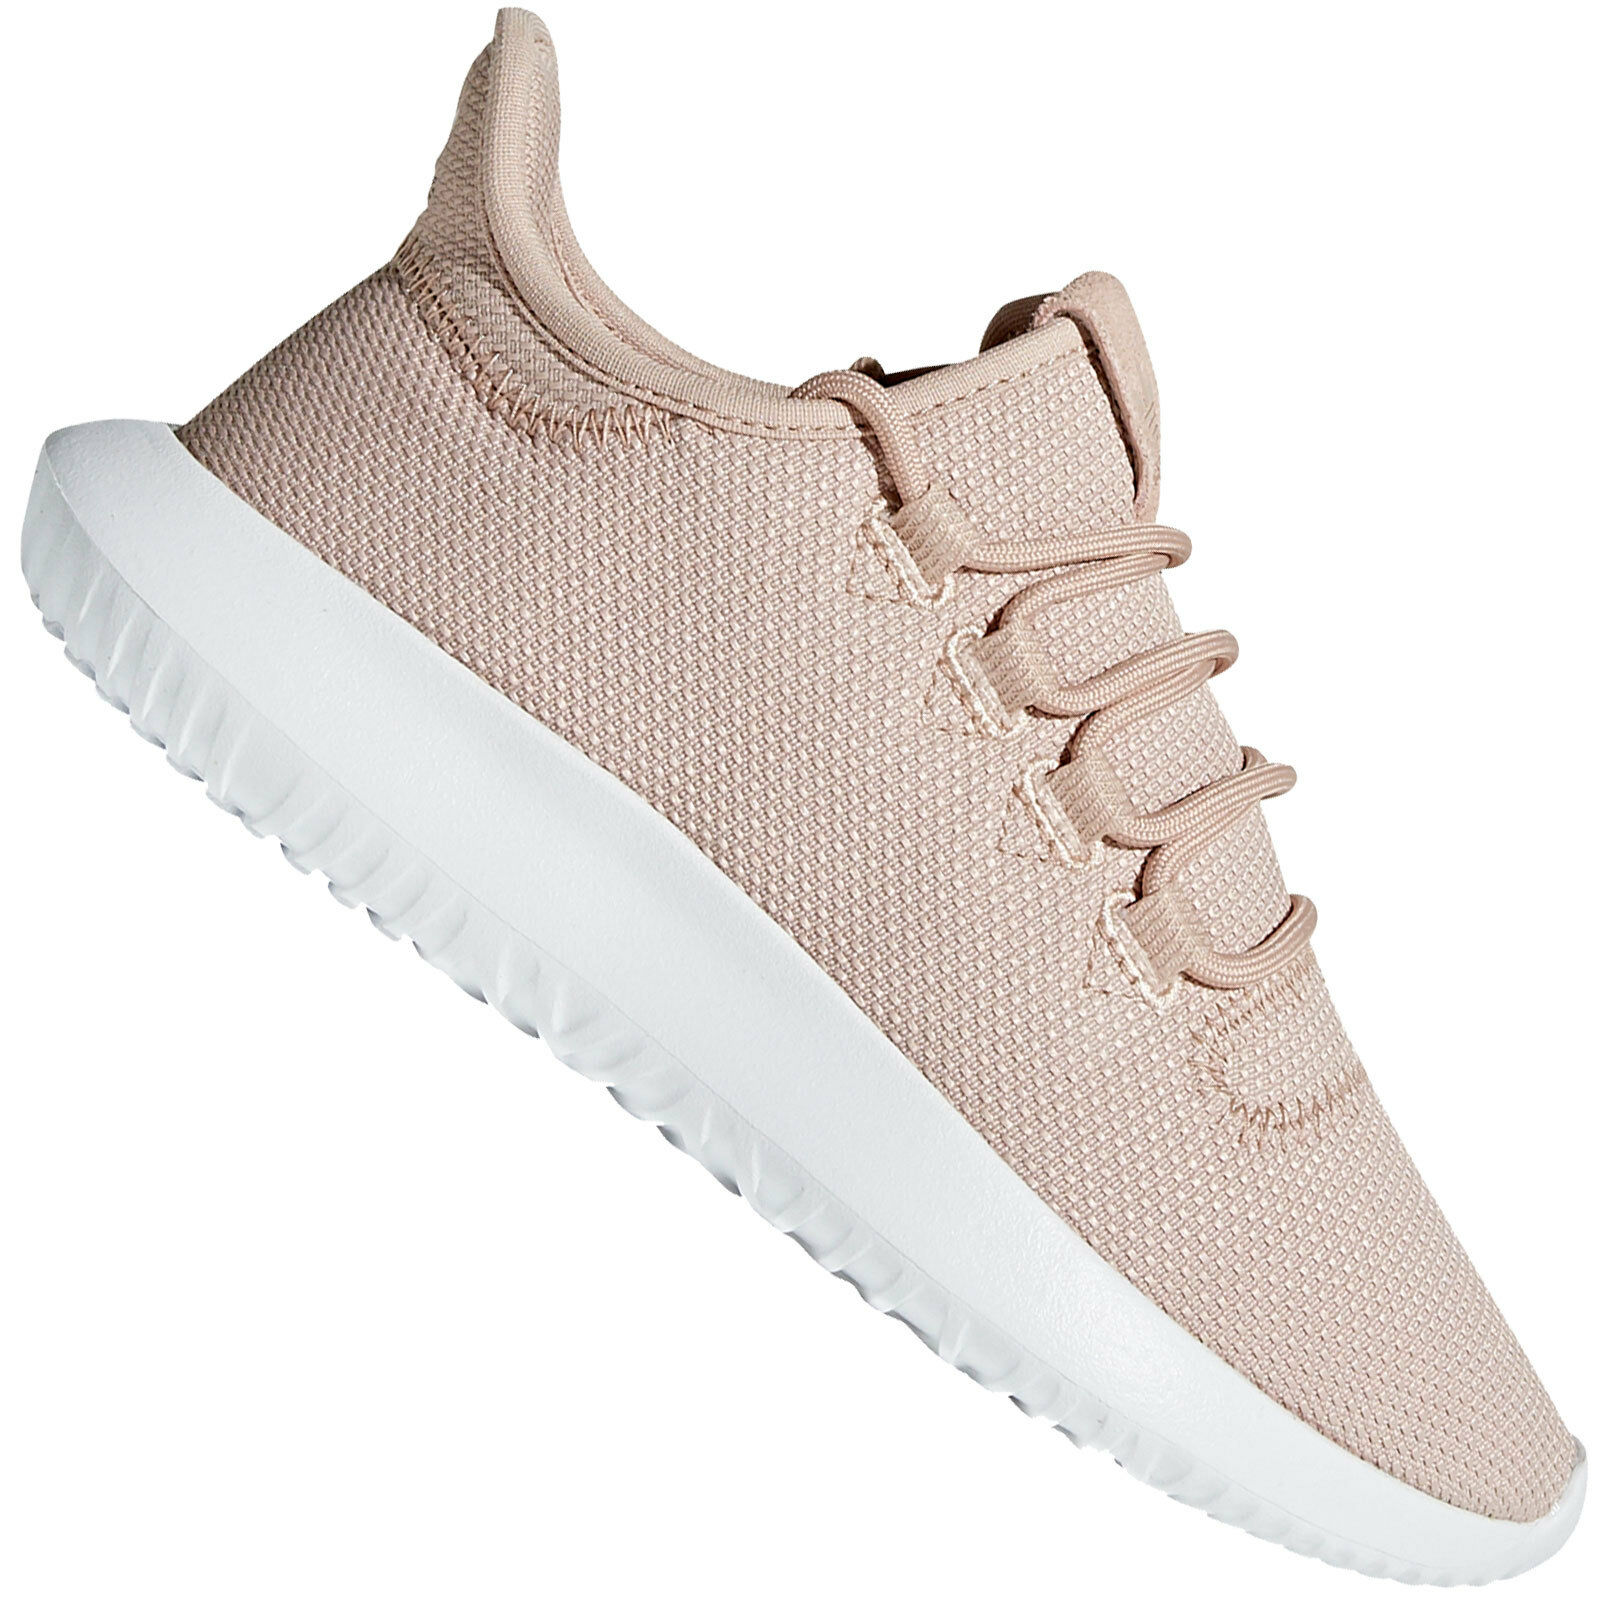 Adidas Shadow Originals Tubular Shadow Adidas Knit Kinder-Sneaker Damen-Turnschuhe Sportschuhe 8f8d85